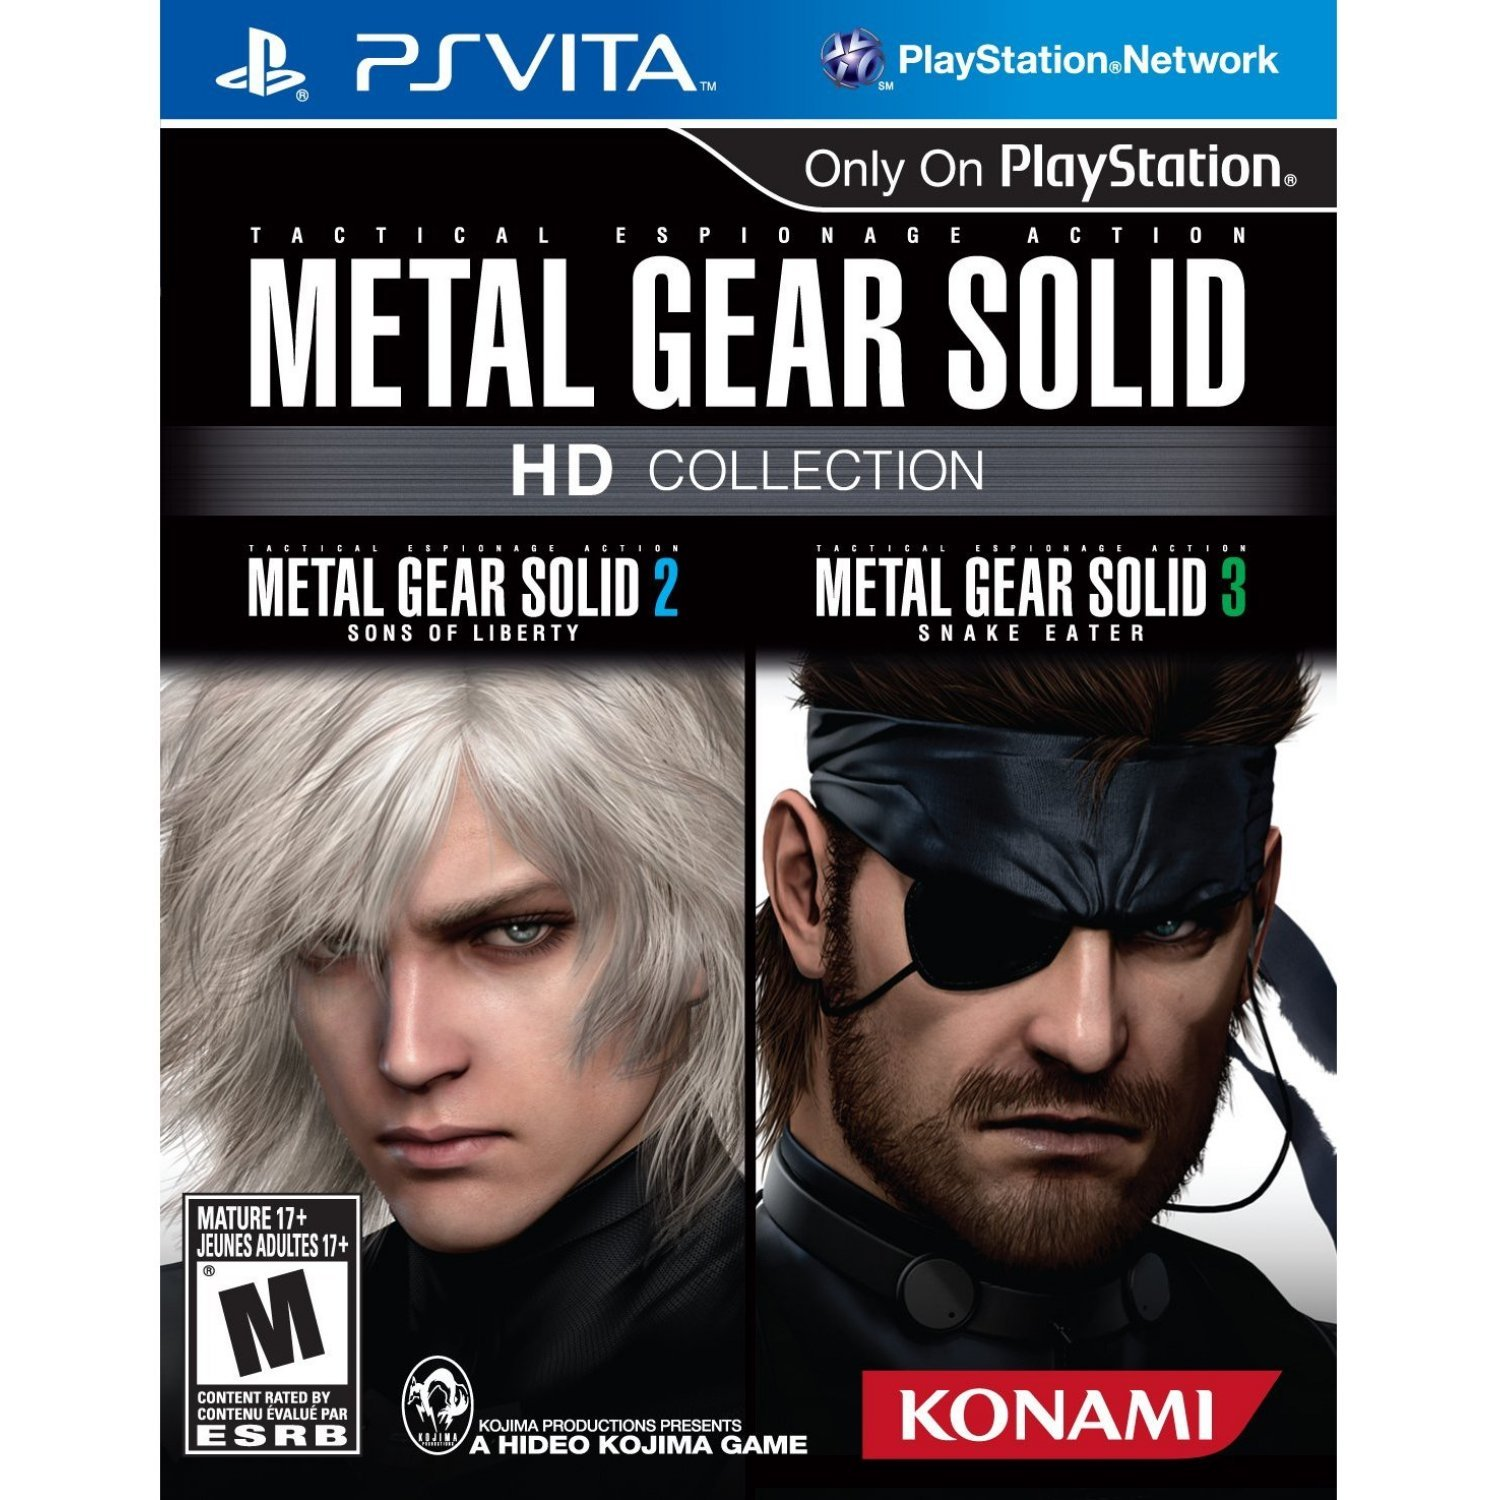 Metal Gear Solid HD Collection (PS3 / PlayStation 3) Game